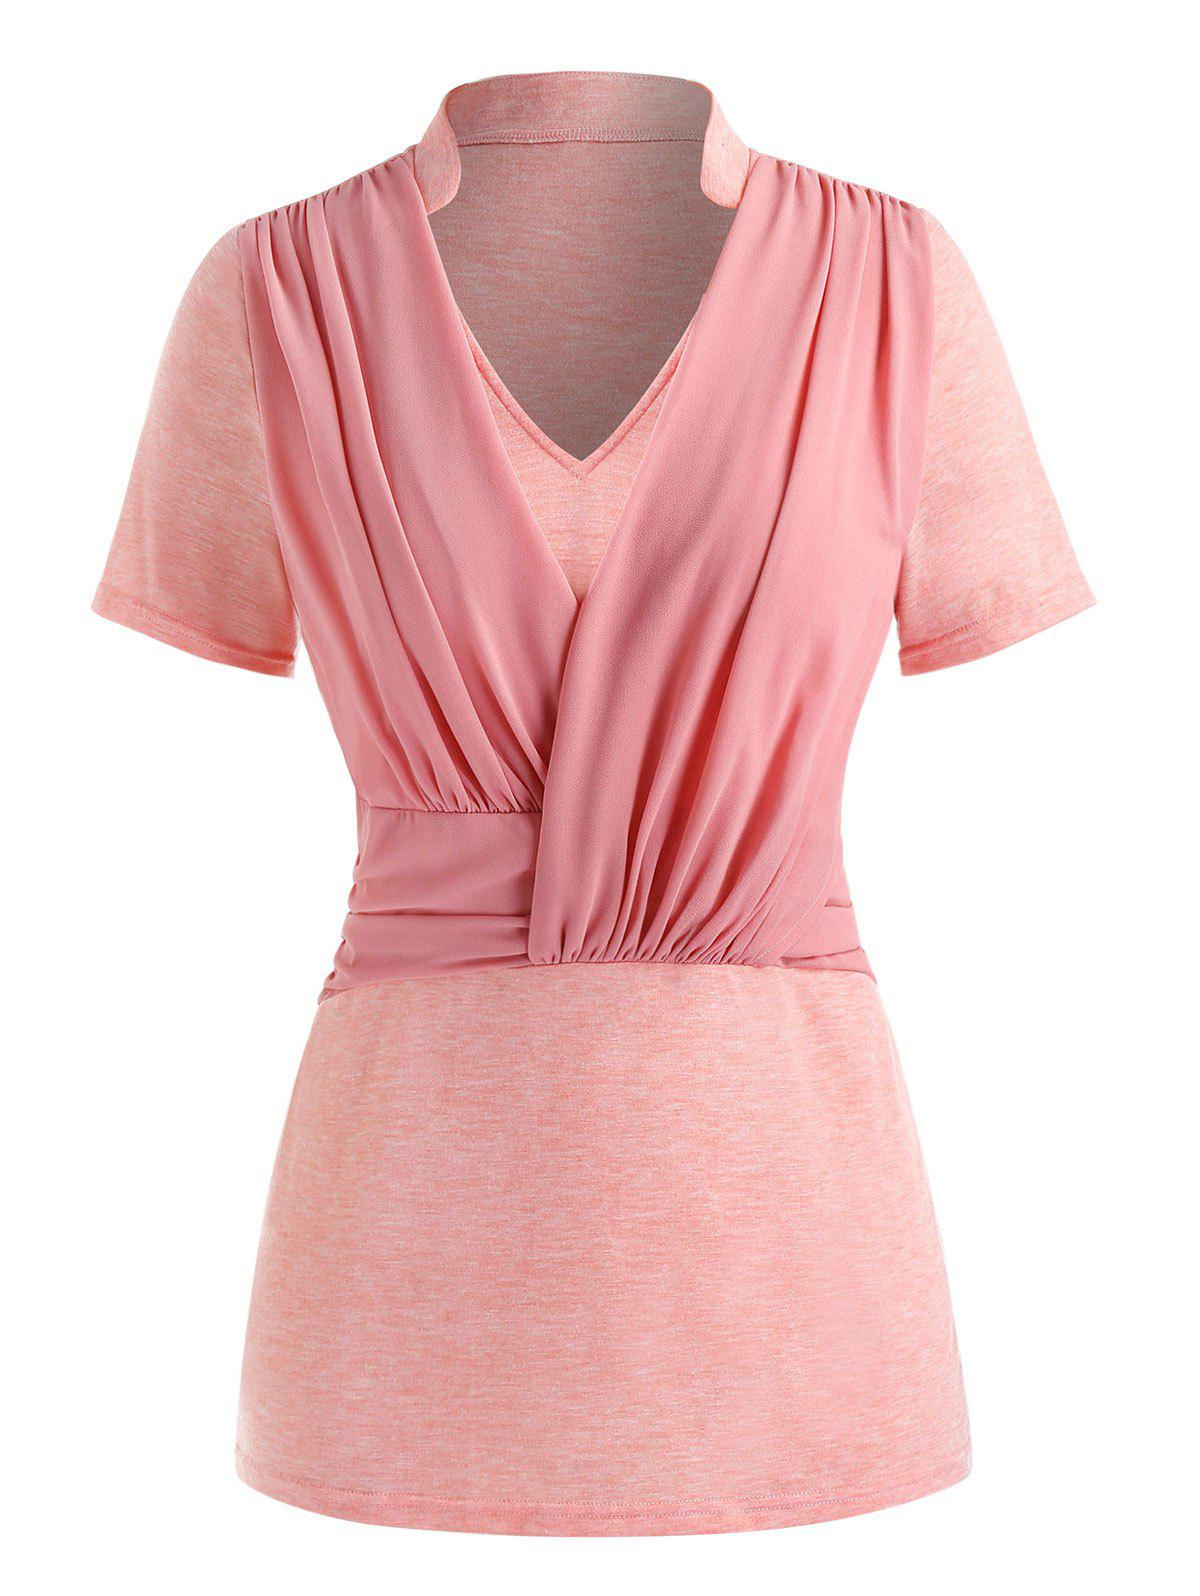 Plus Size Ruched Splicing T Shirt - PINK L